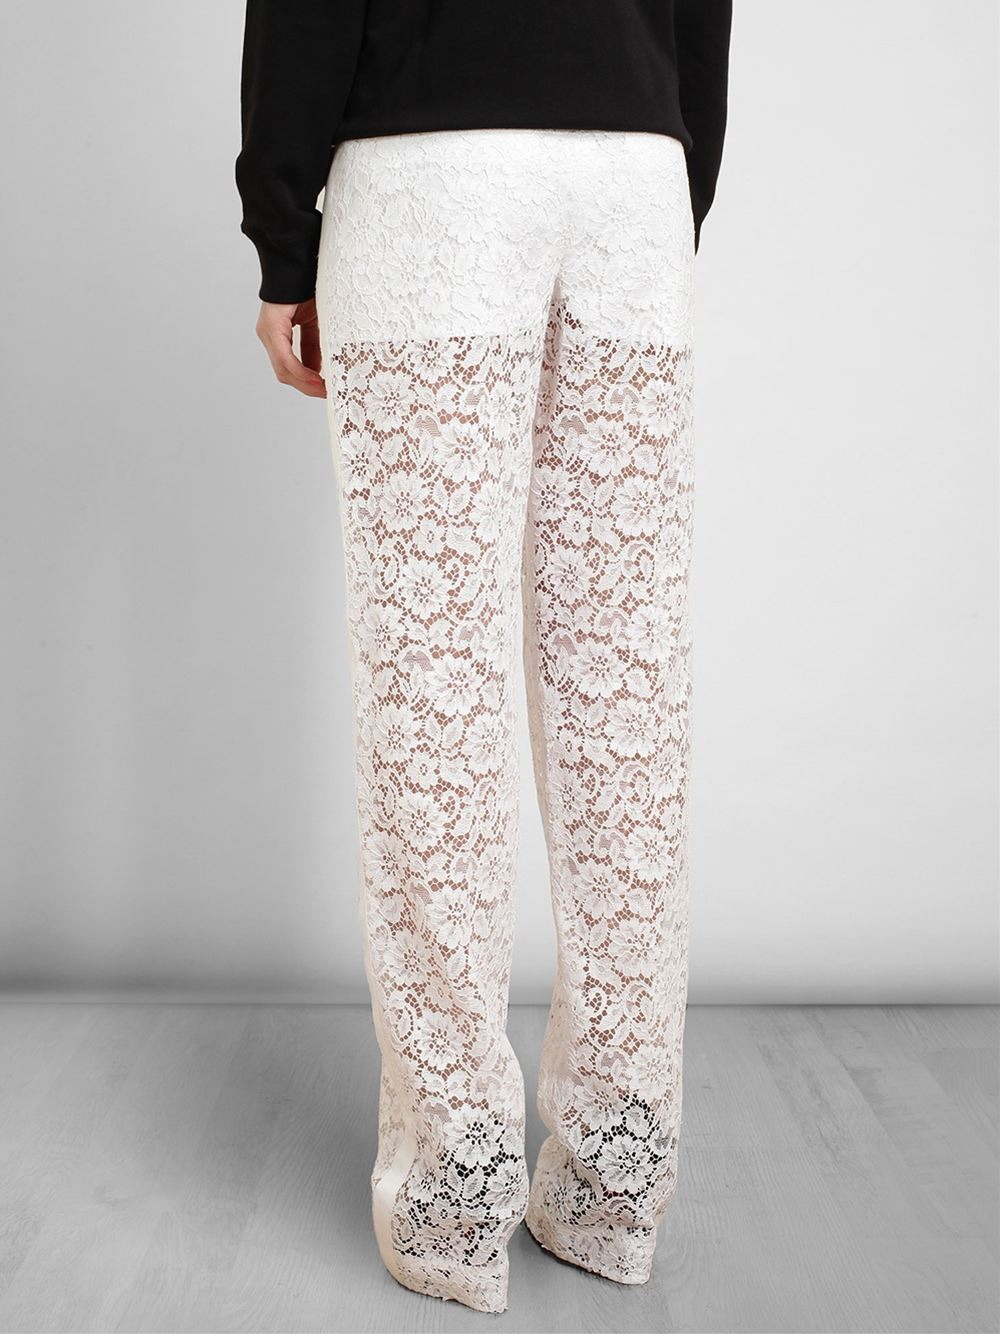 Givenchy Lace Trousers - Smets - Farfetch.com